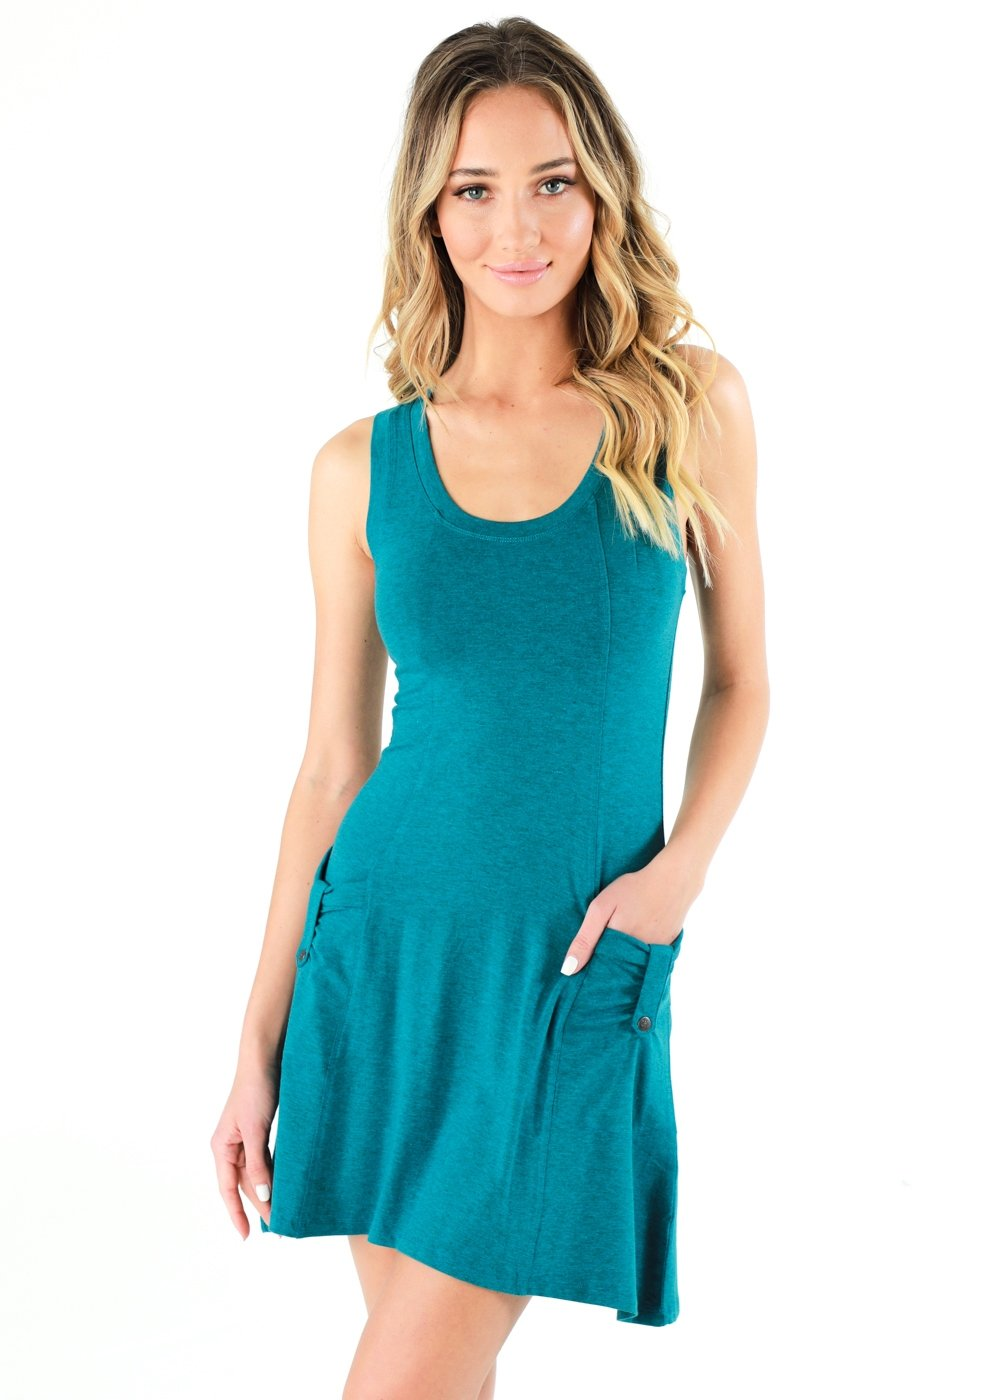 Nomads Hemp Wear Waikiki Dress - Tantrika Clothing